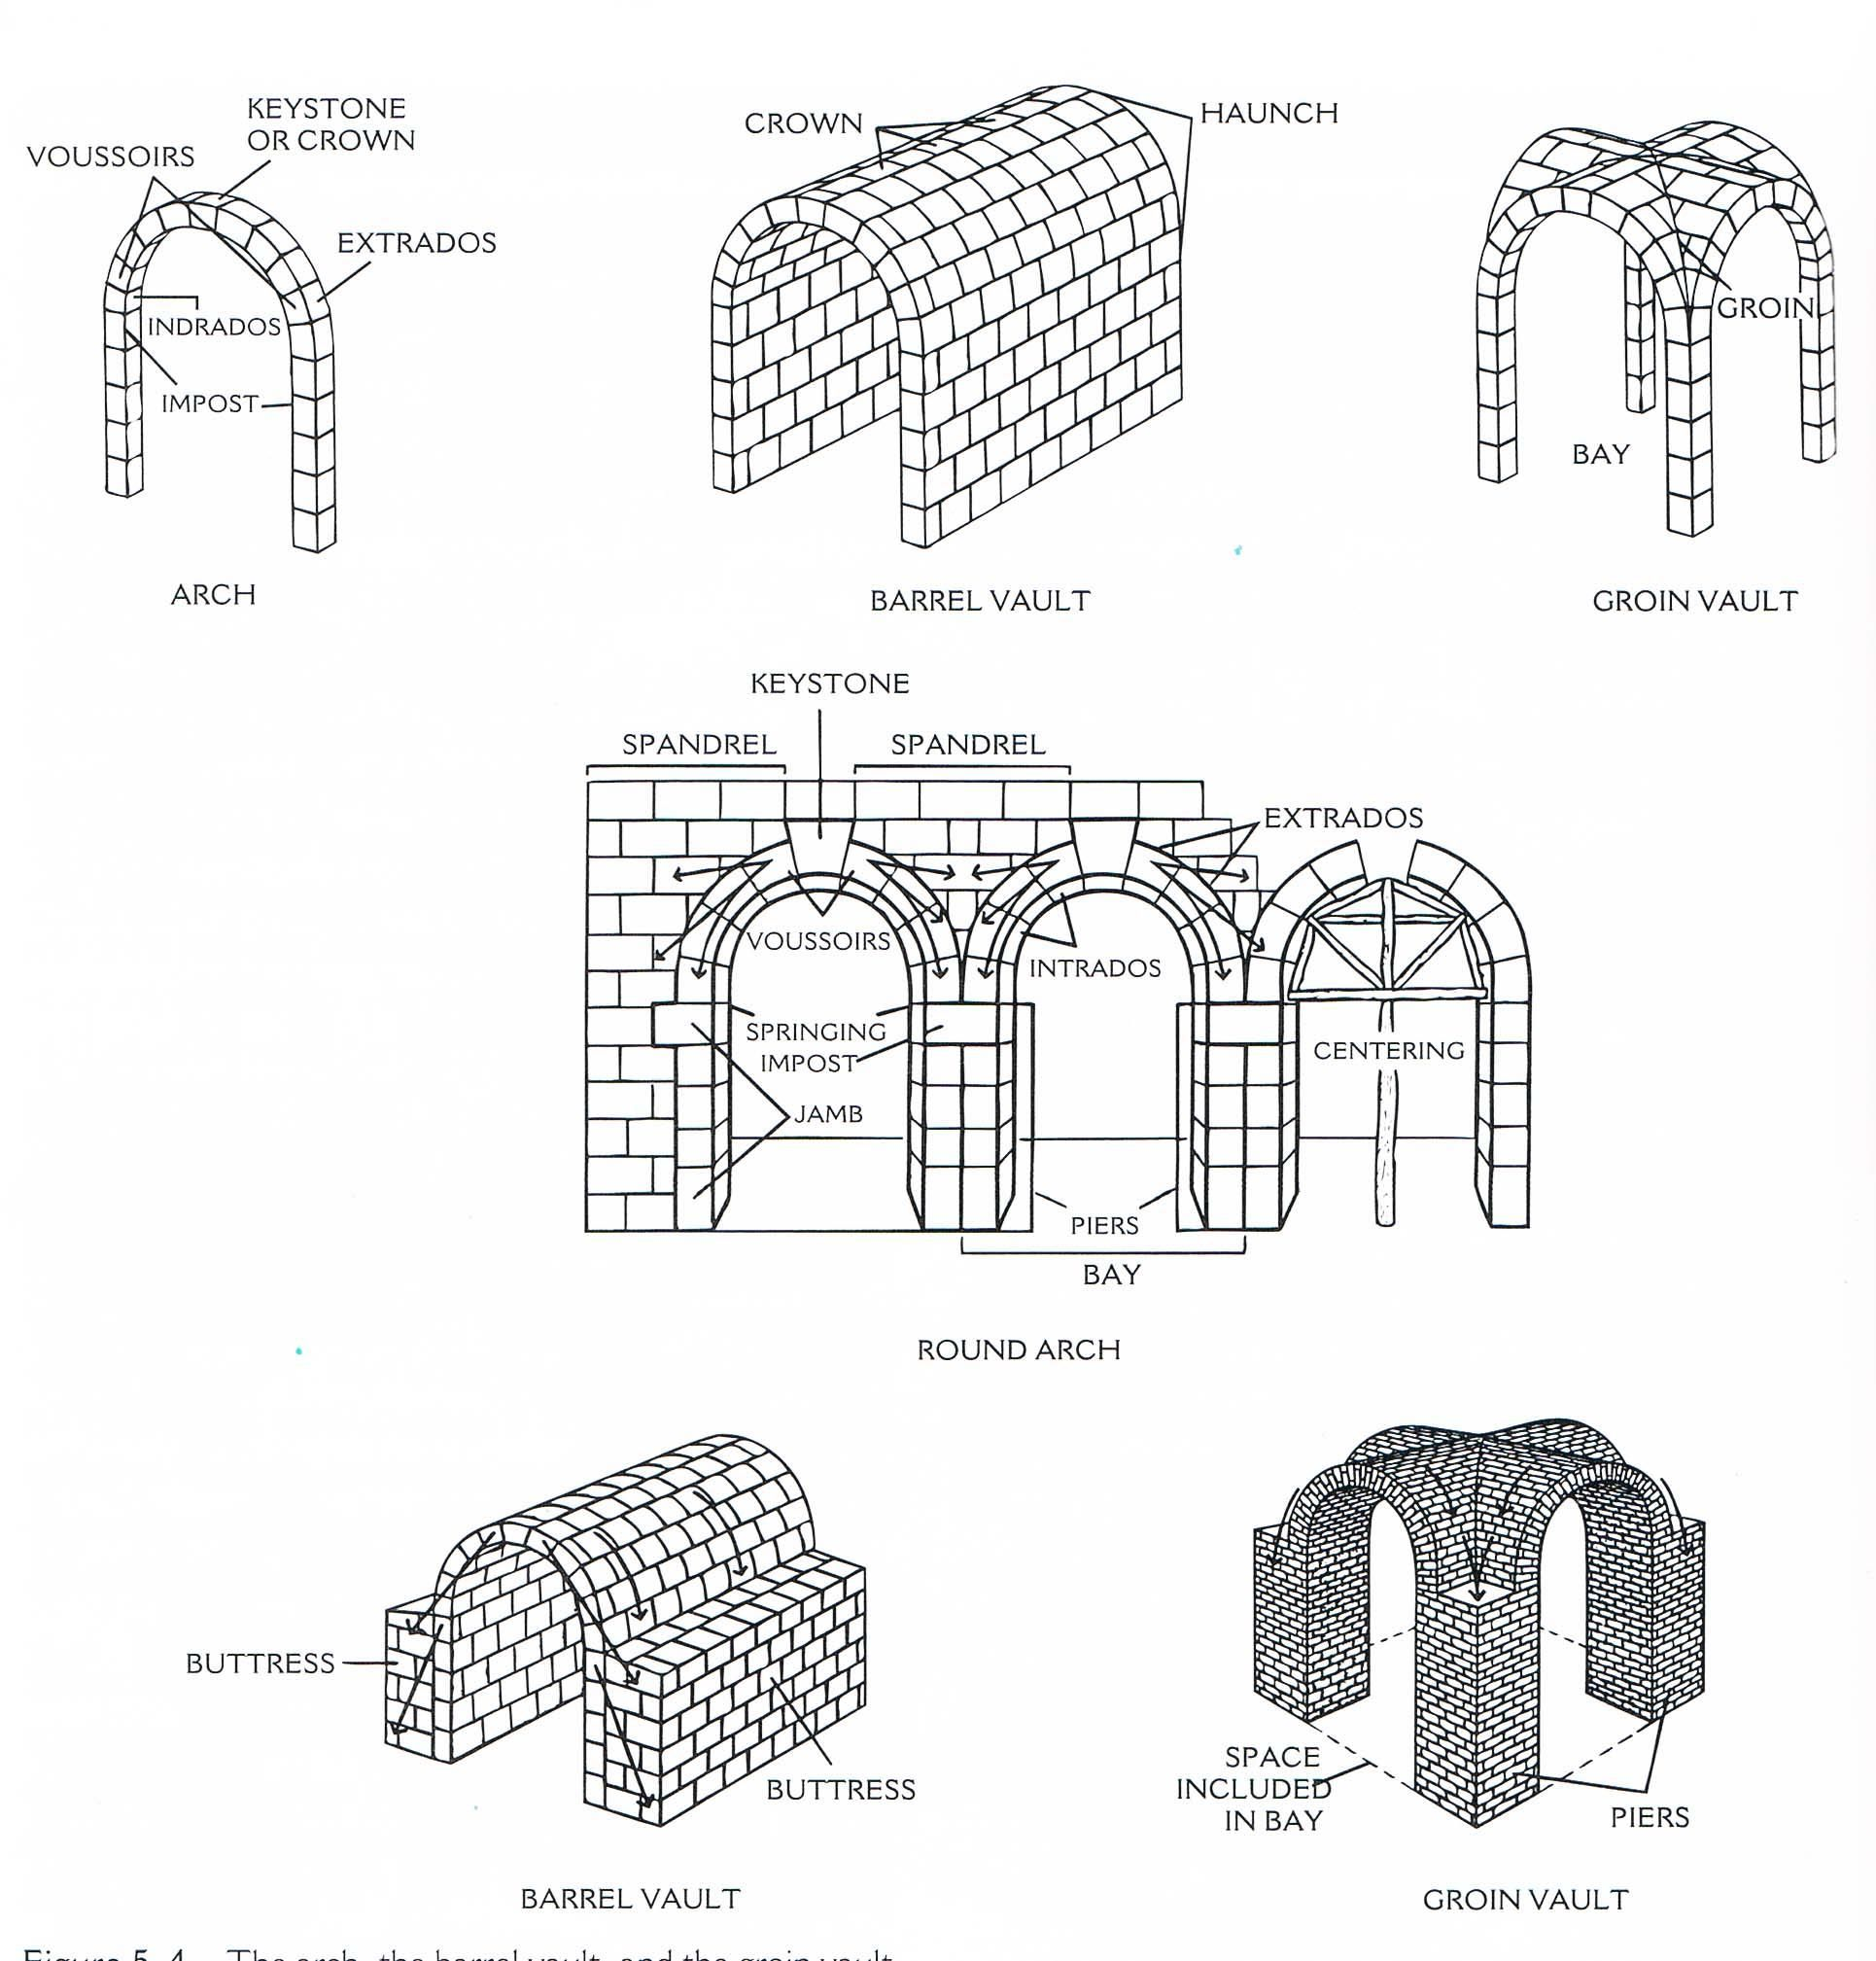 Arches Tunnel Or Barrel Vault Dome And Drum Keystone Springing